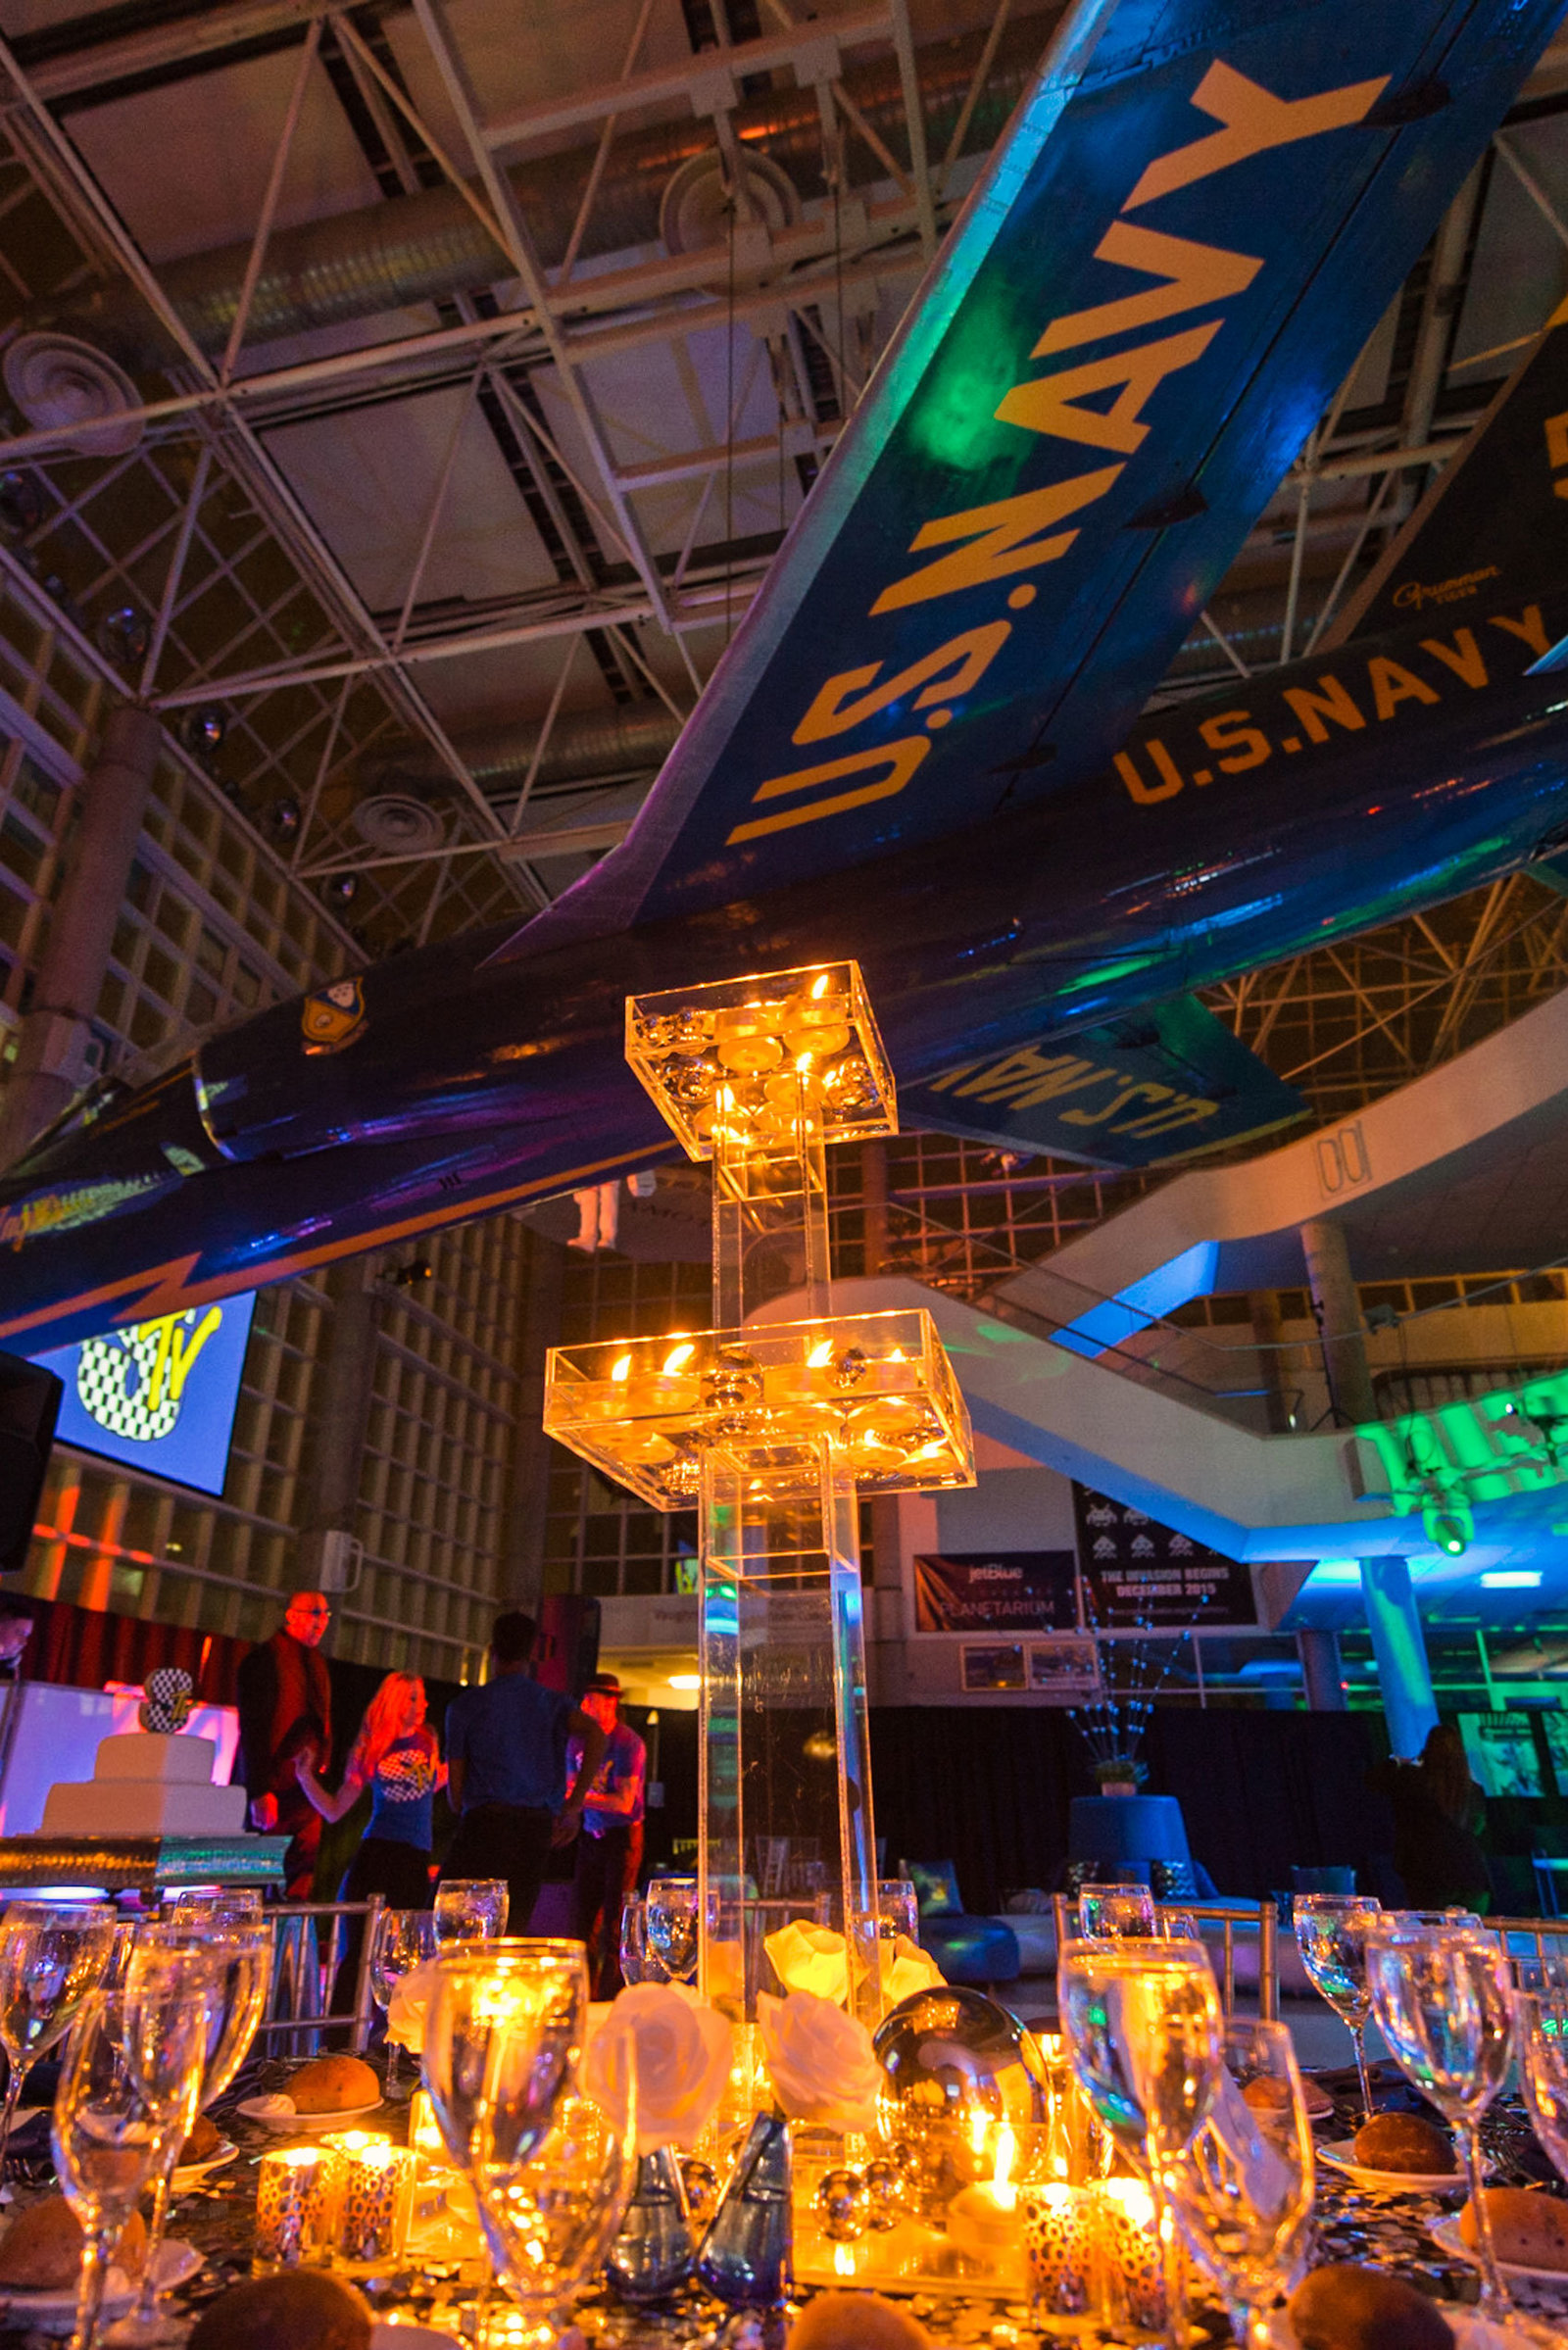 Center piece lit up at Cradle of Aviation